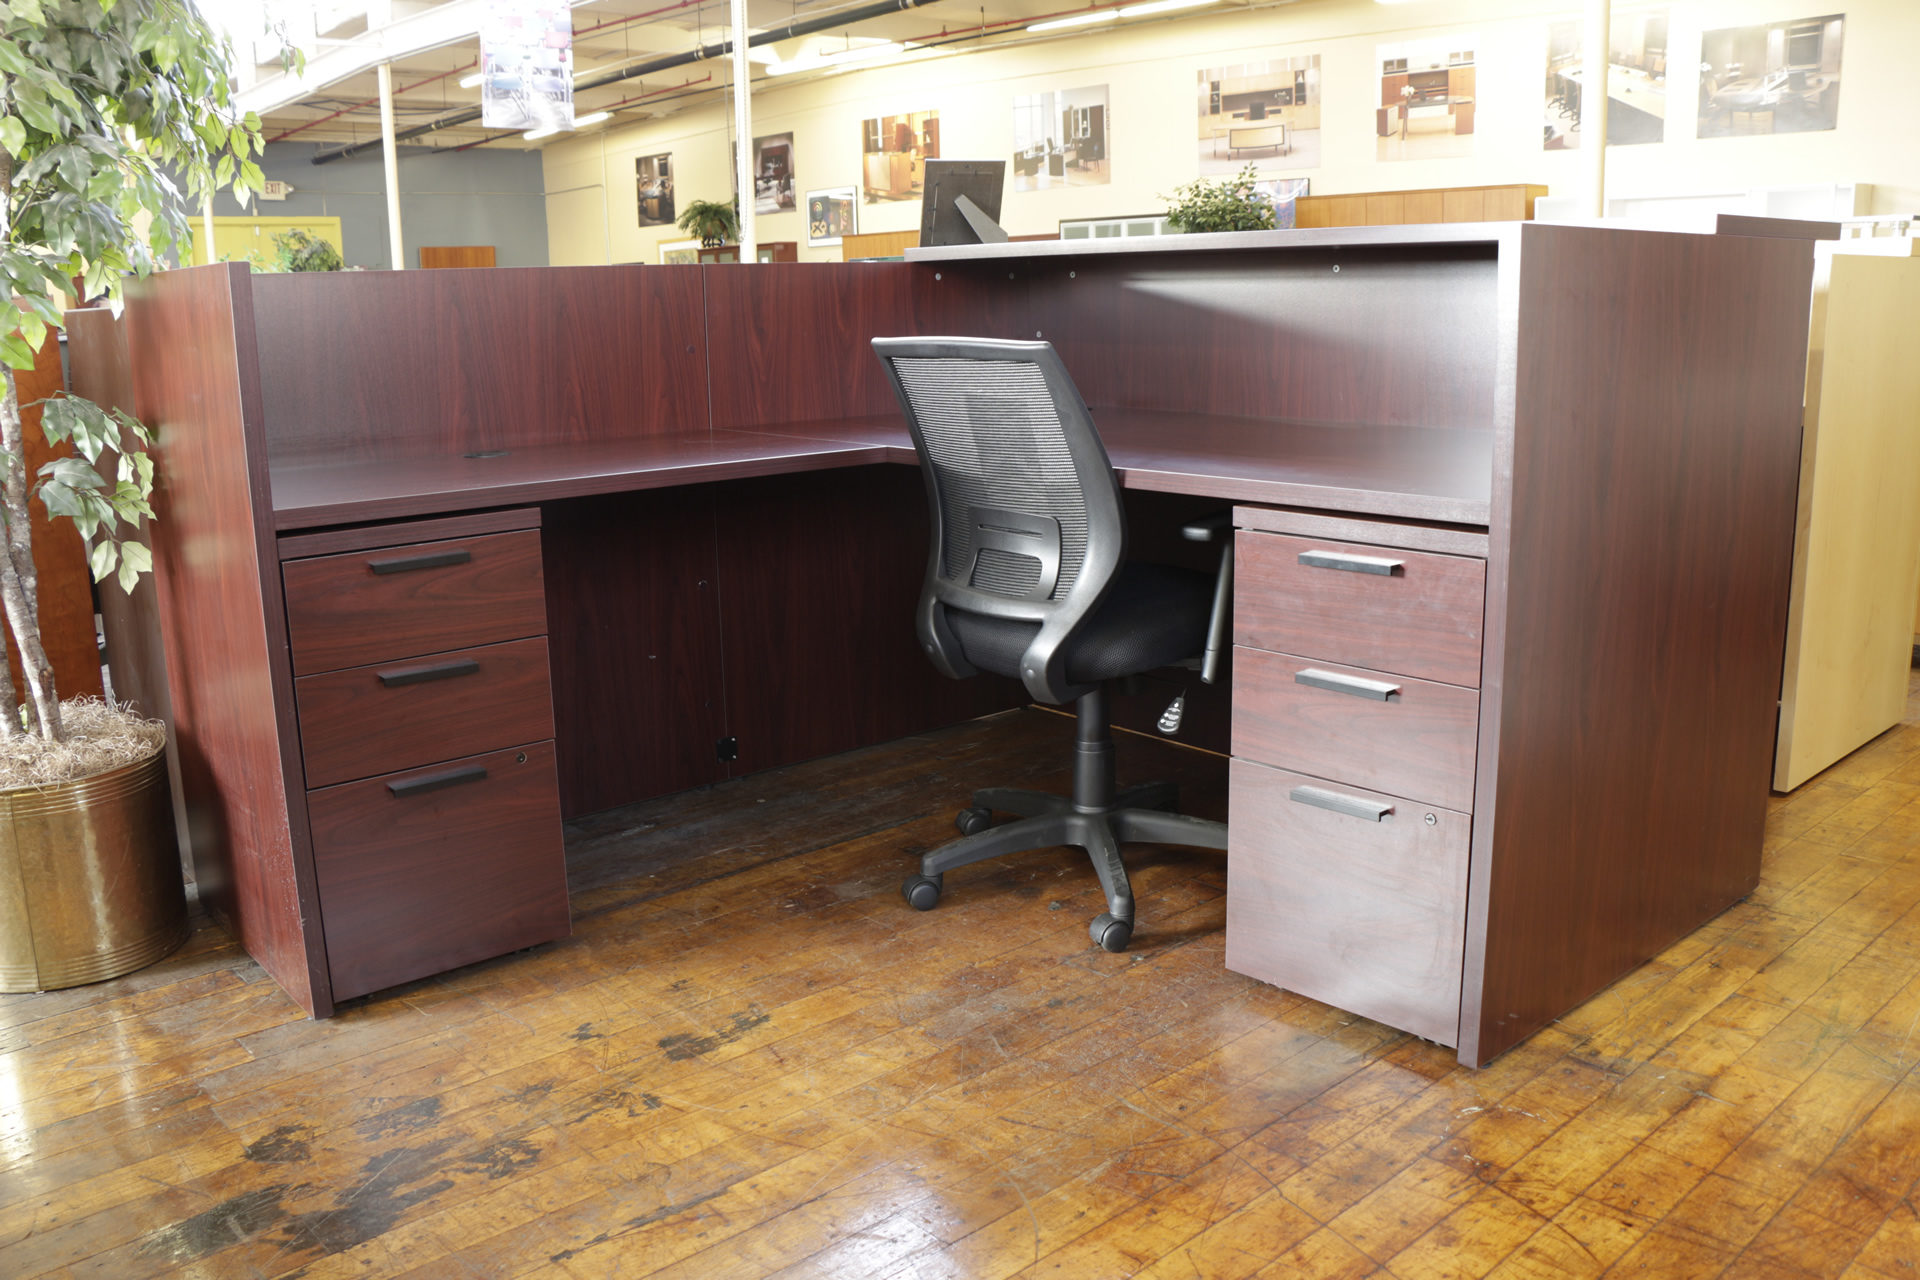 peartreeofficefurniture_peartreeofficefurniture_mg_2549.jpg